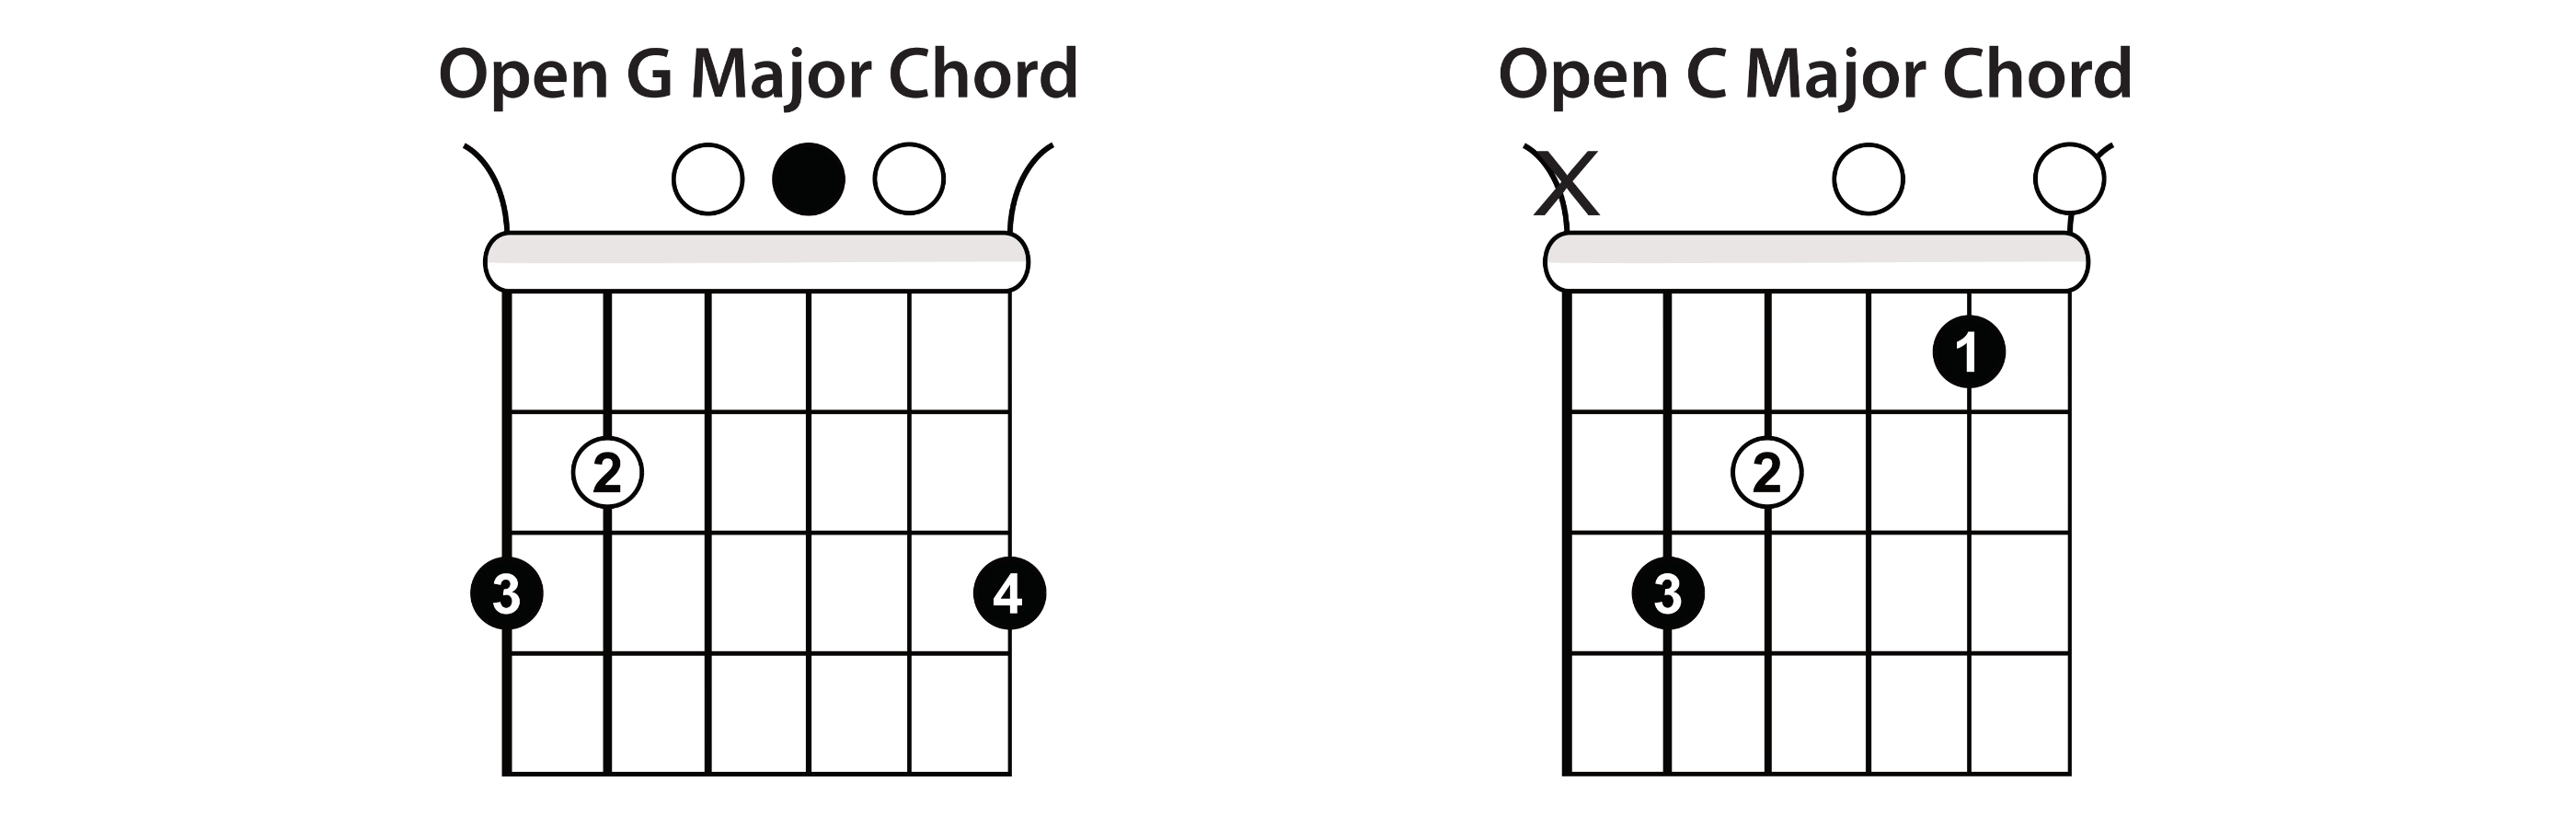 G Major and C Major Chords